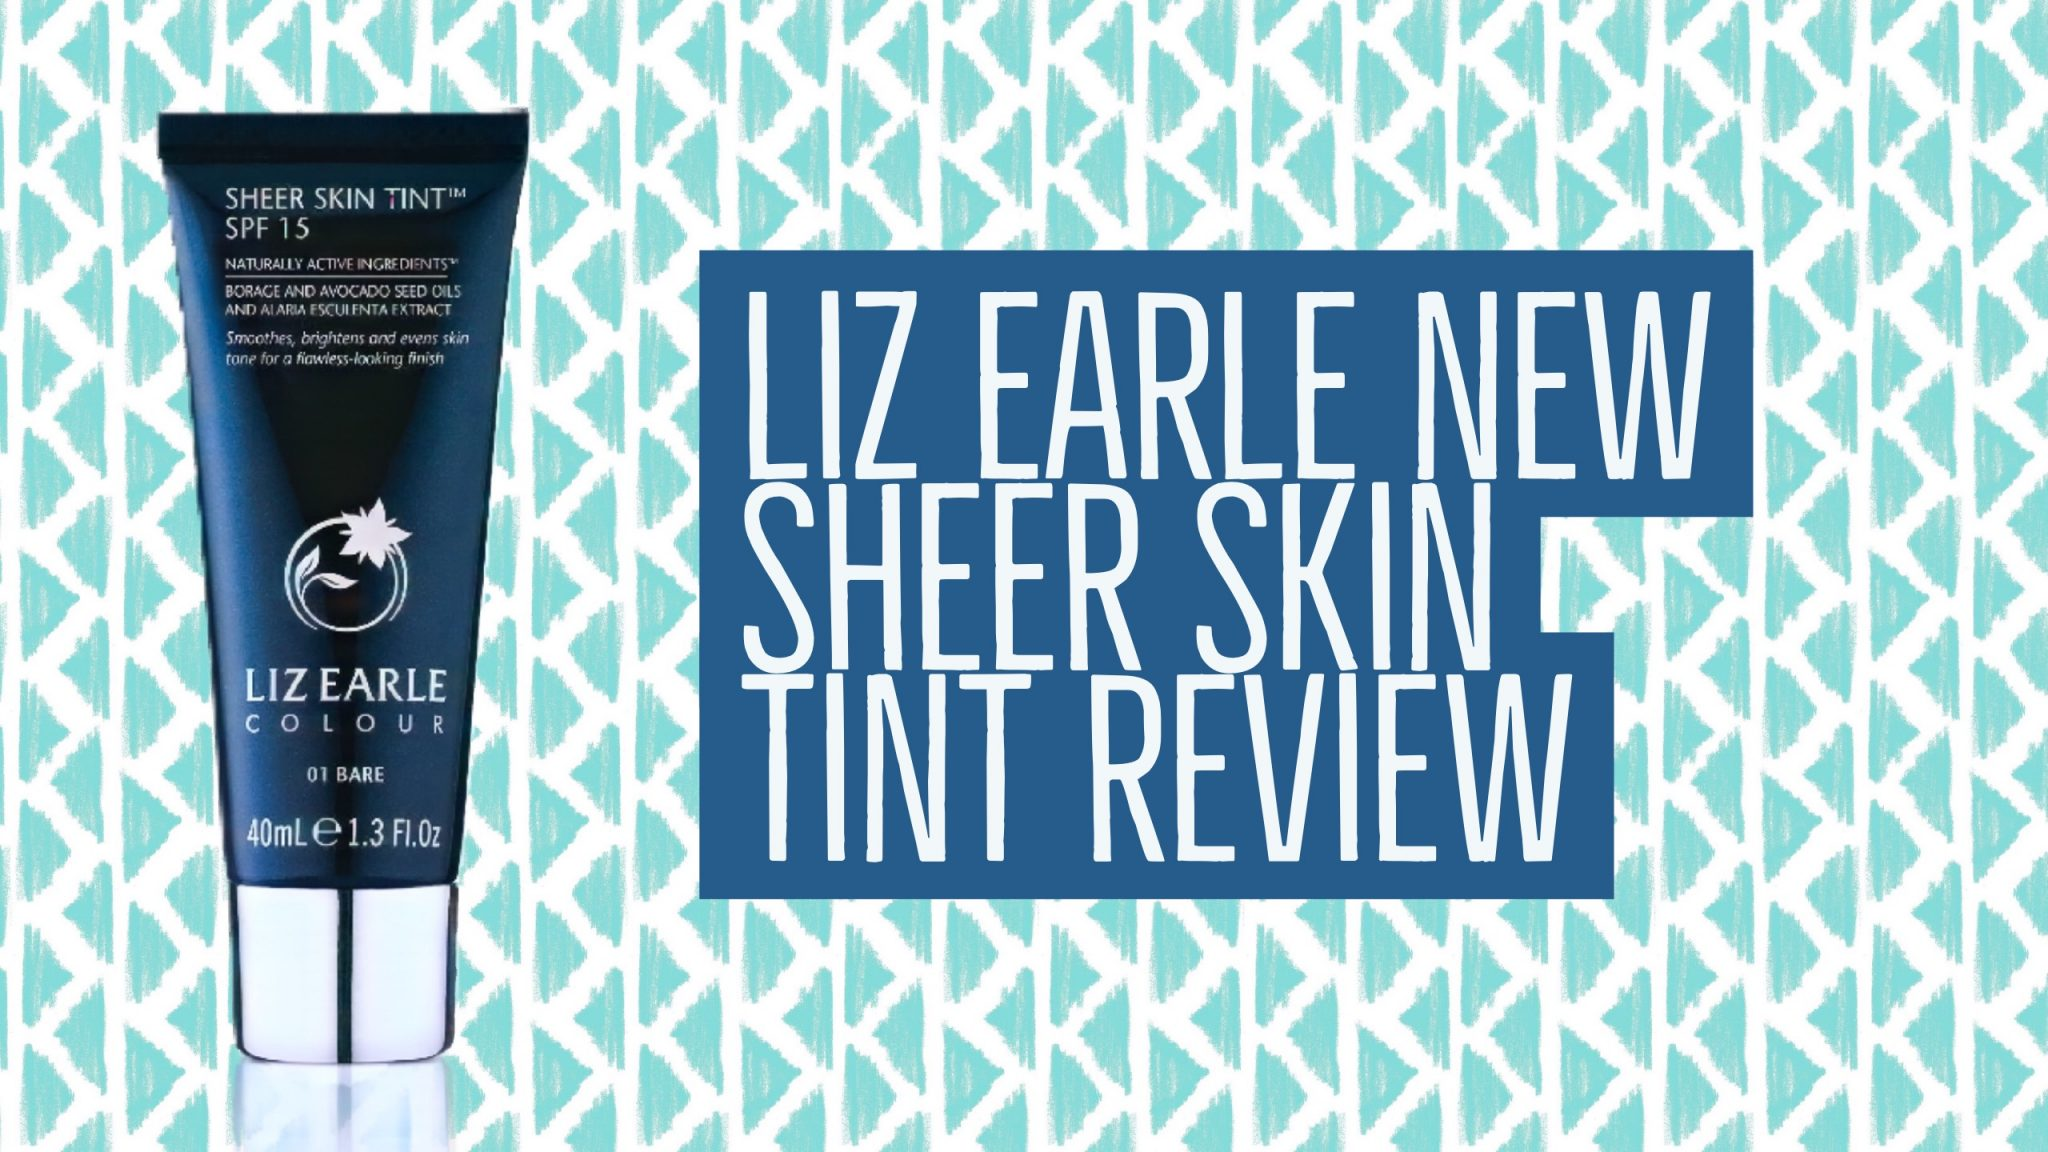 Liz Earle New Sheer Skin Tint Reviewed, and get it free with a skincare set!